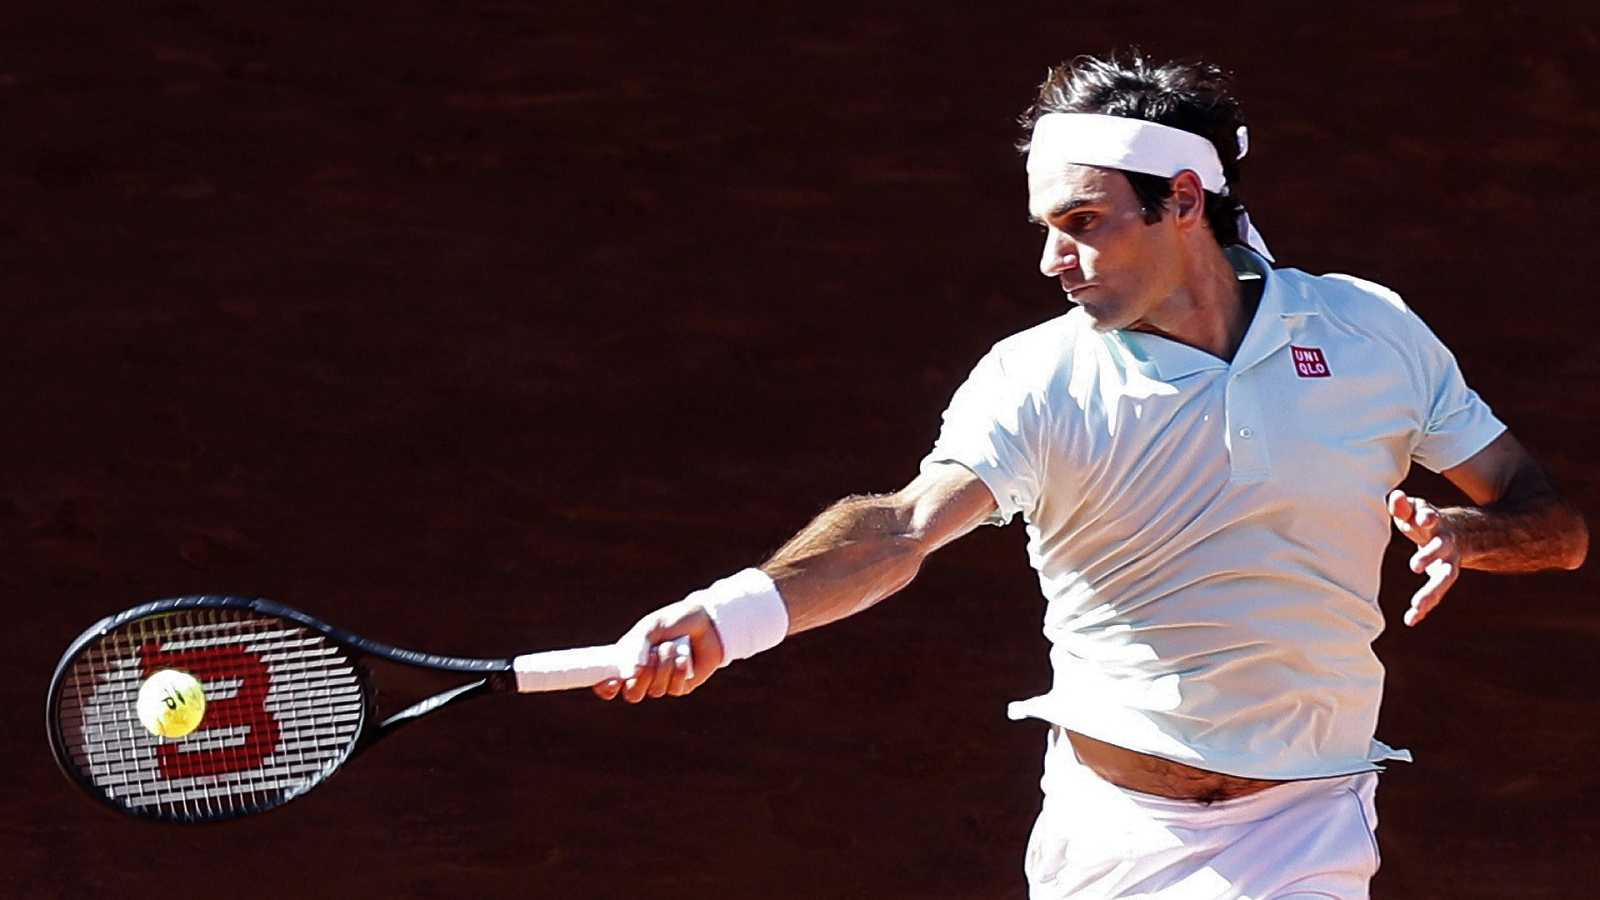 Tenis - ATP Mutua Madrid Open. 1/4 Final: R. Federer - D. Thiem - ver ahora